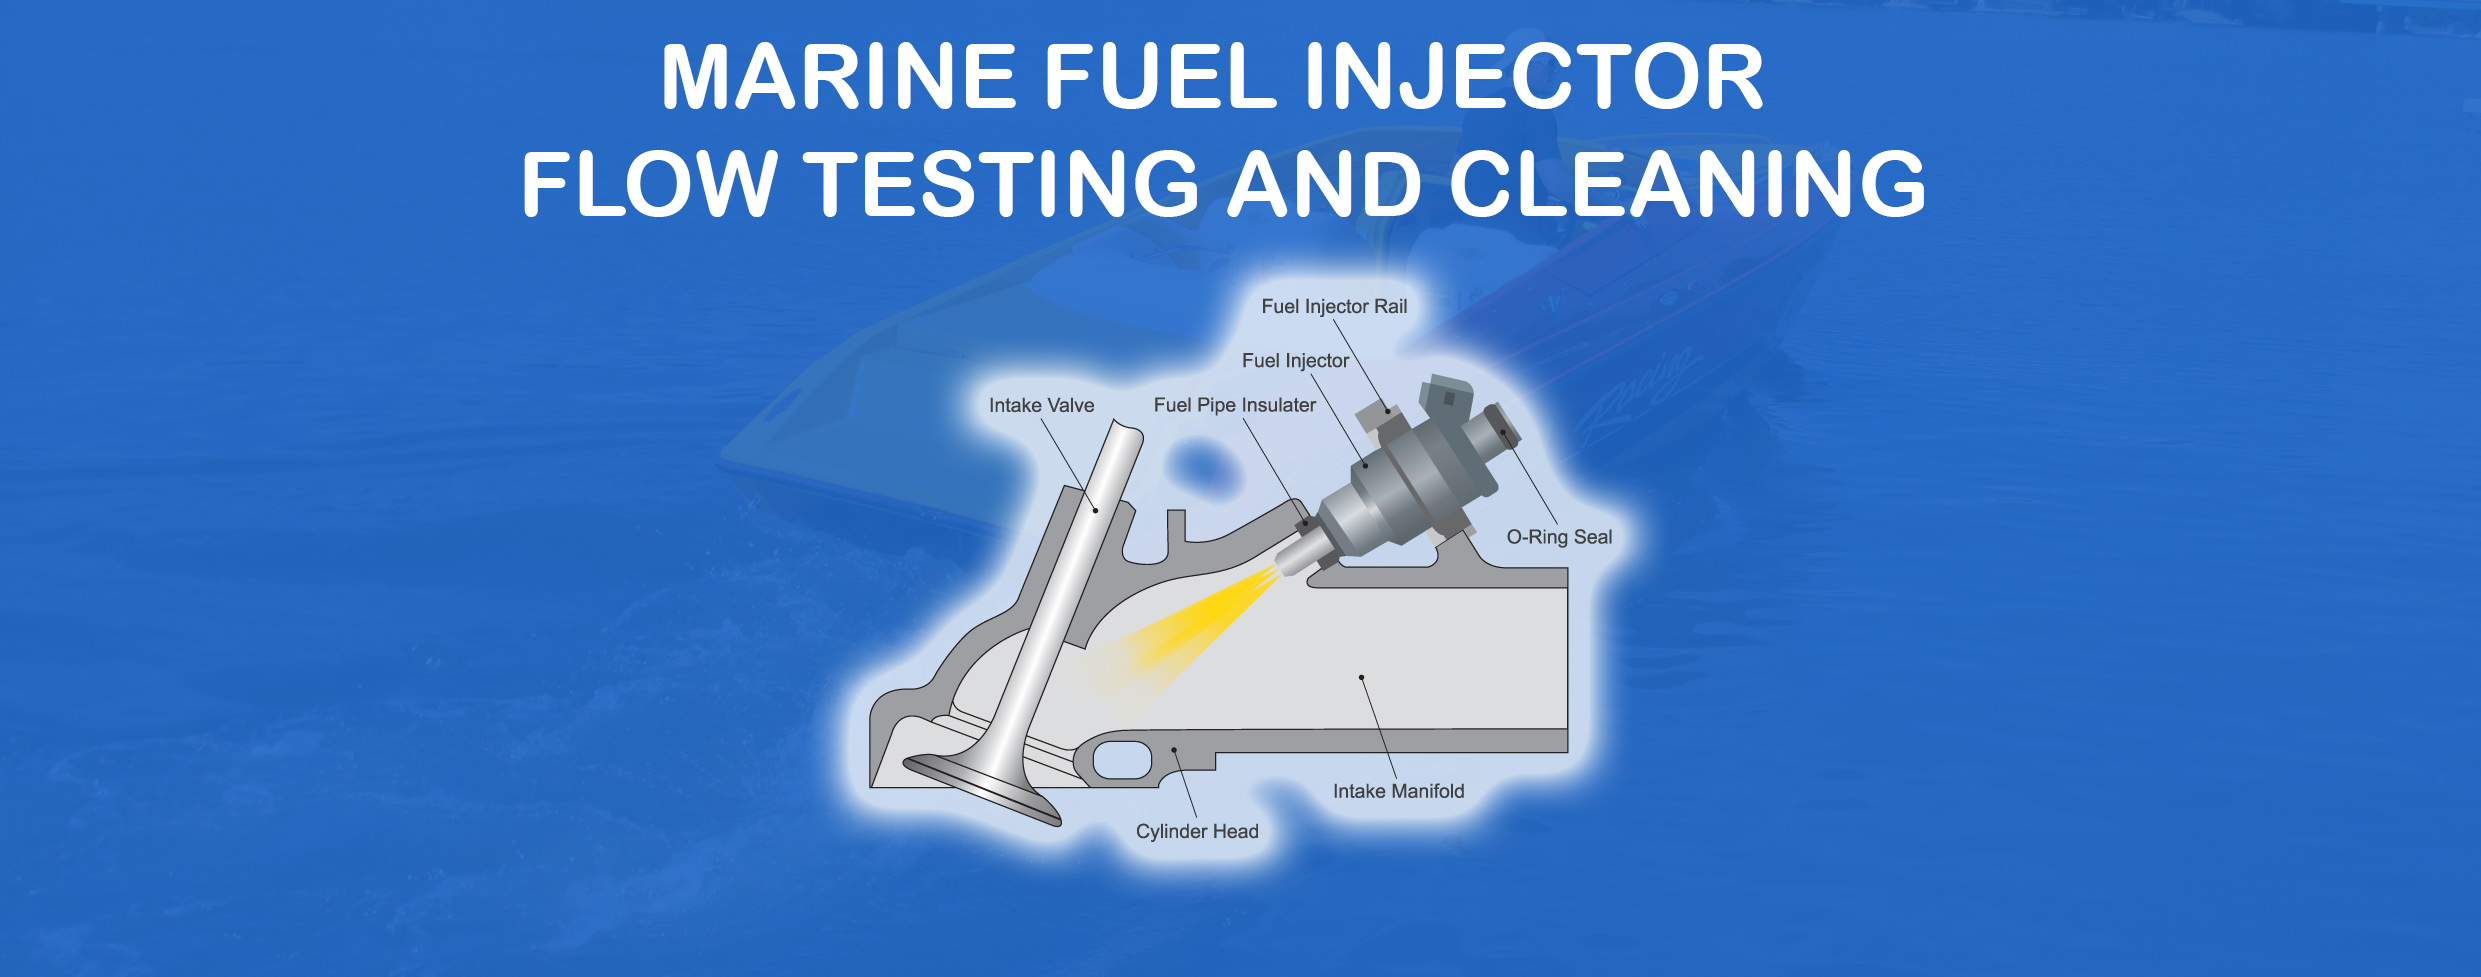 fuel-injector-background